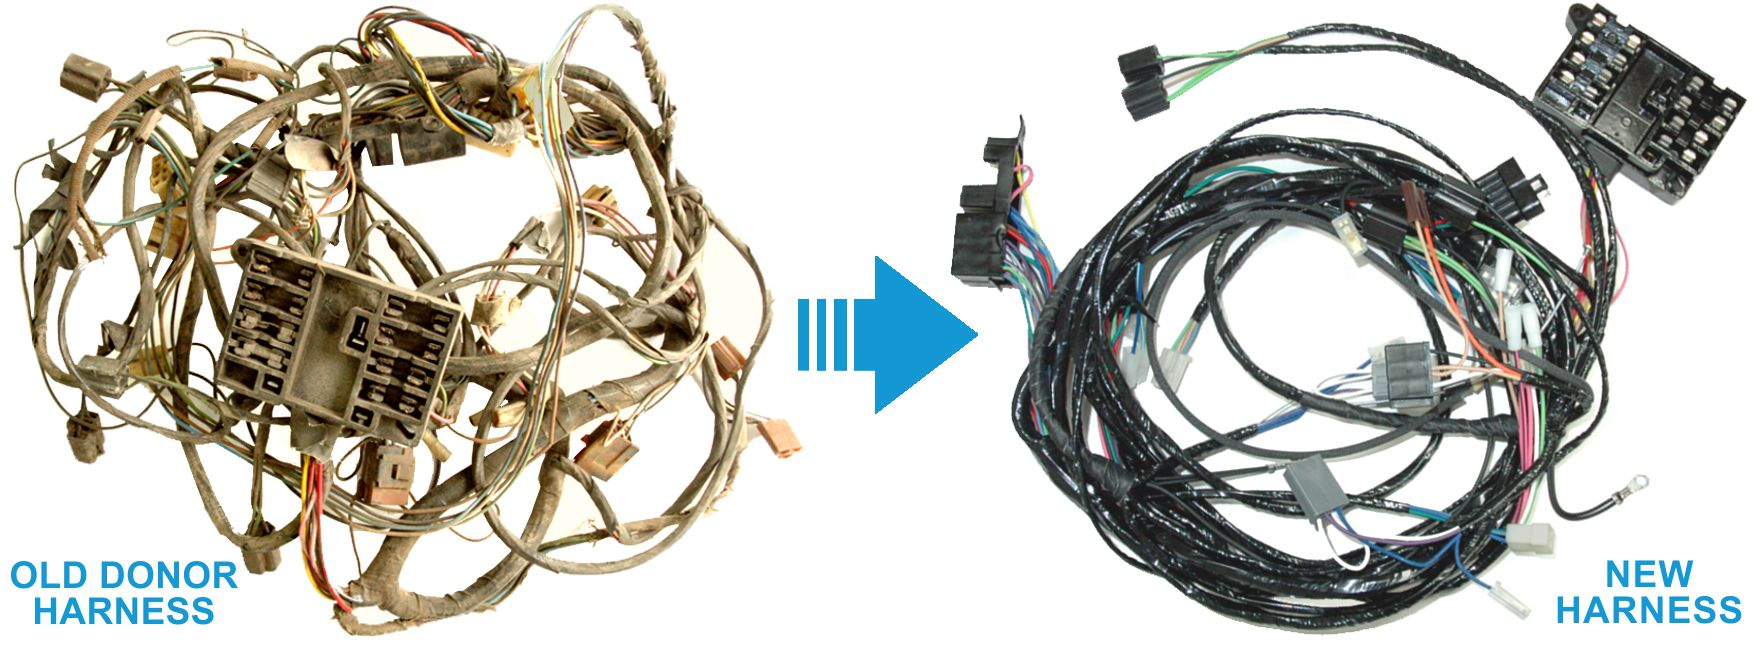 Peachy Exact Oem Reproduction Wiring Harnesses For Classic Muscle Cars Wiring Cloud Oideiuggs Outletorg